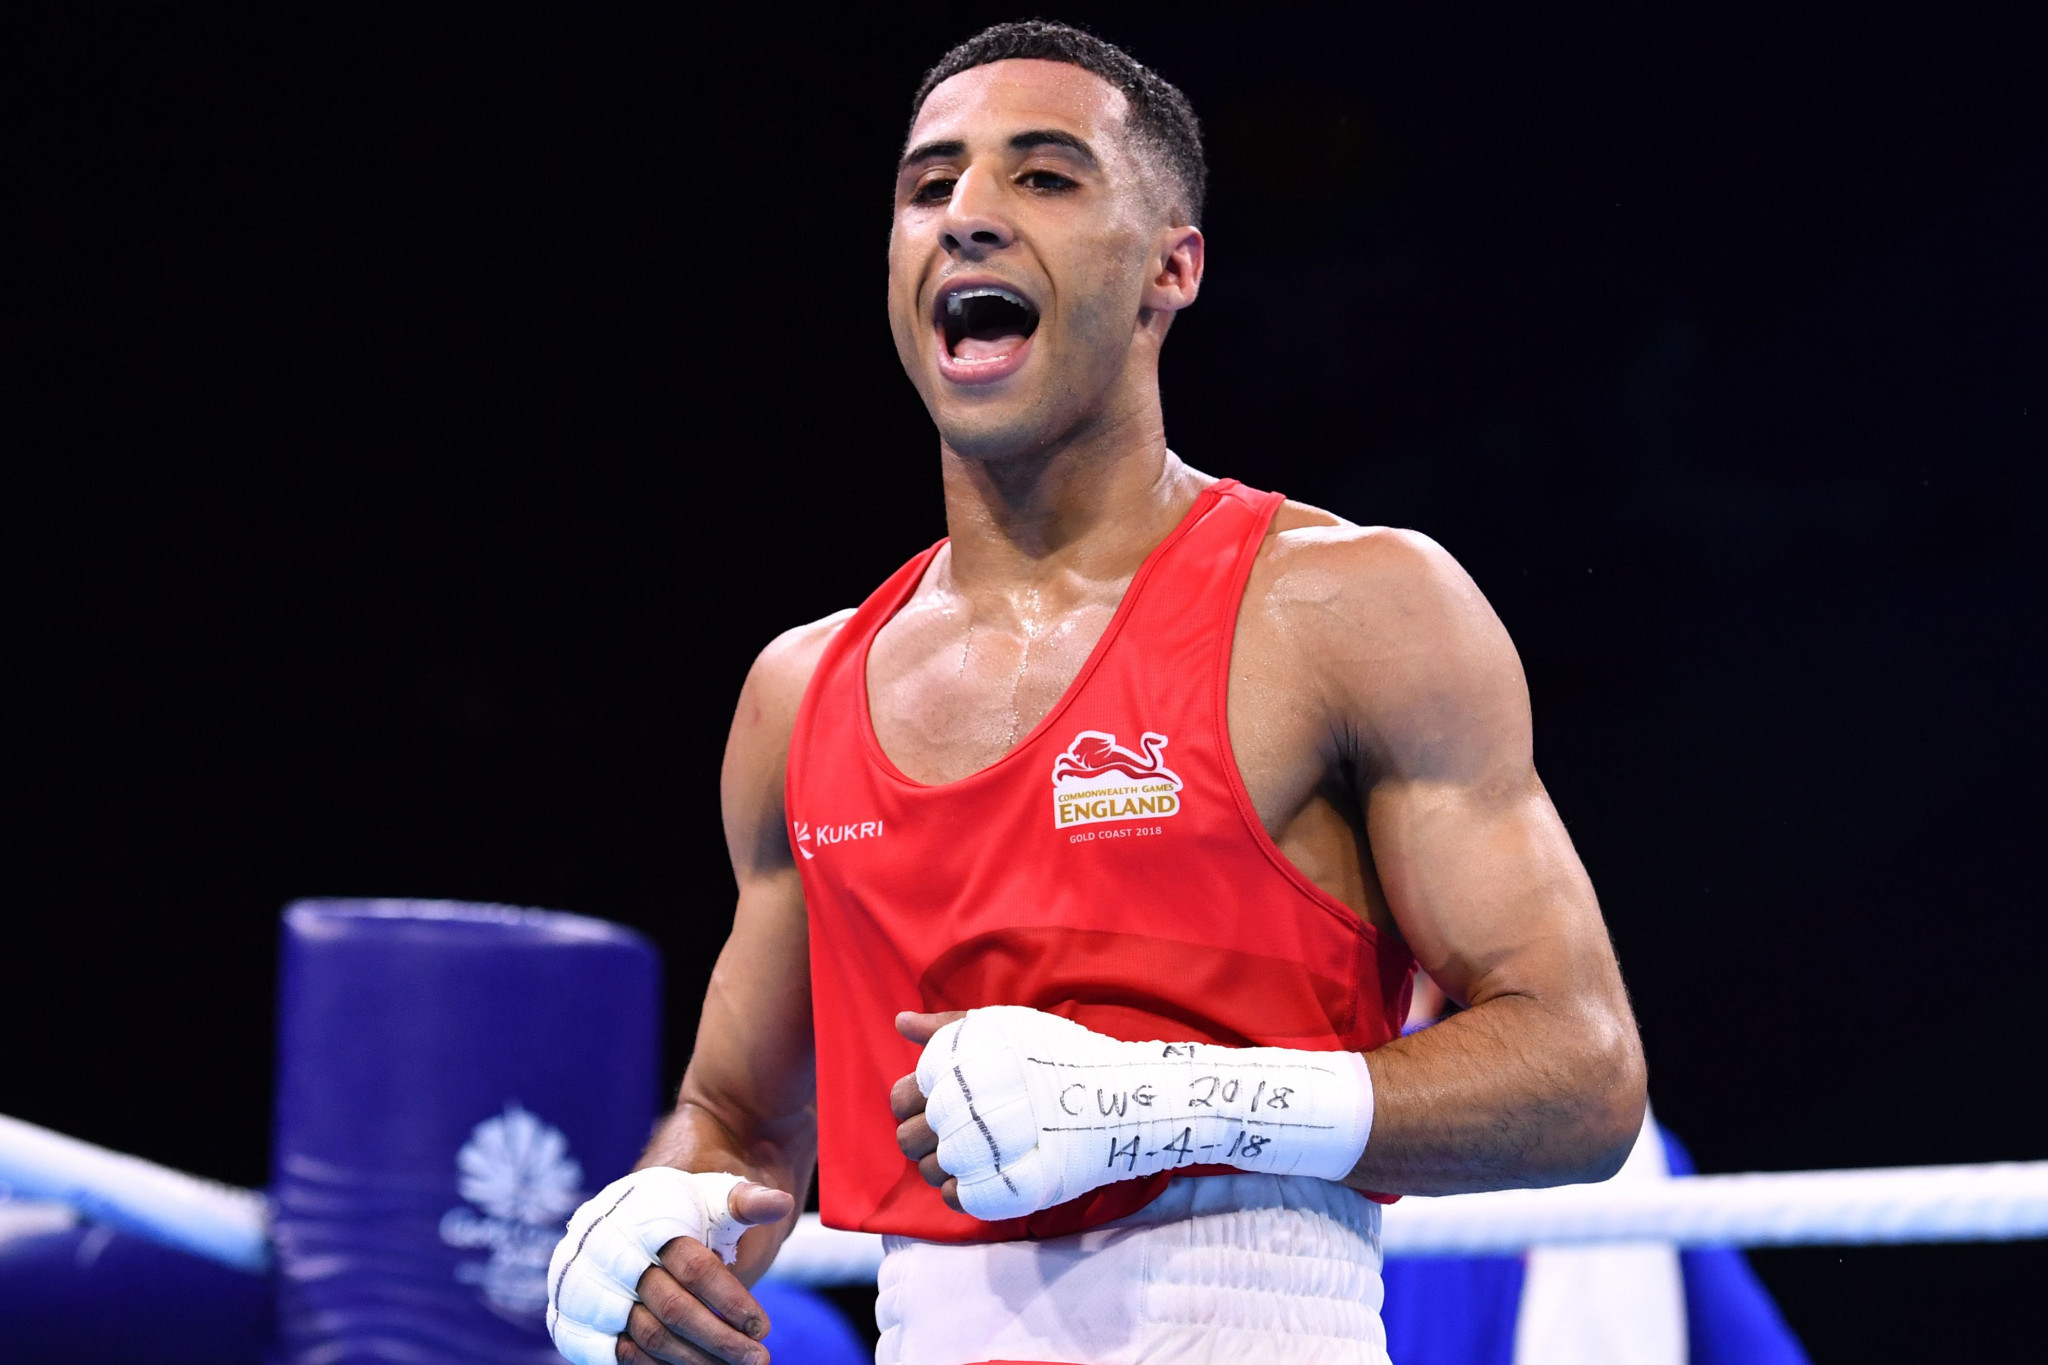 England enjoyed their best ever Commonwealth Games boxing performance at Gold Coast 2018 ©Getty Images